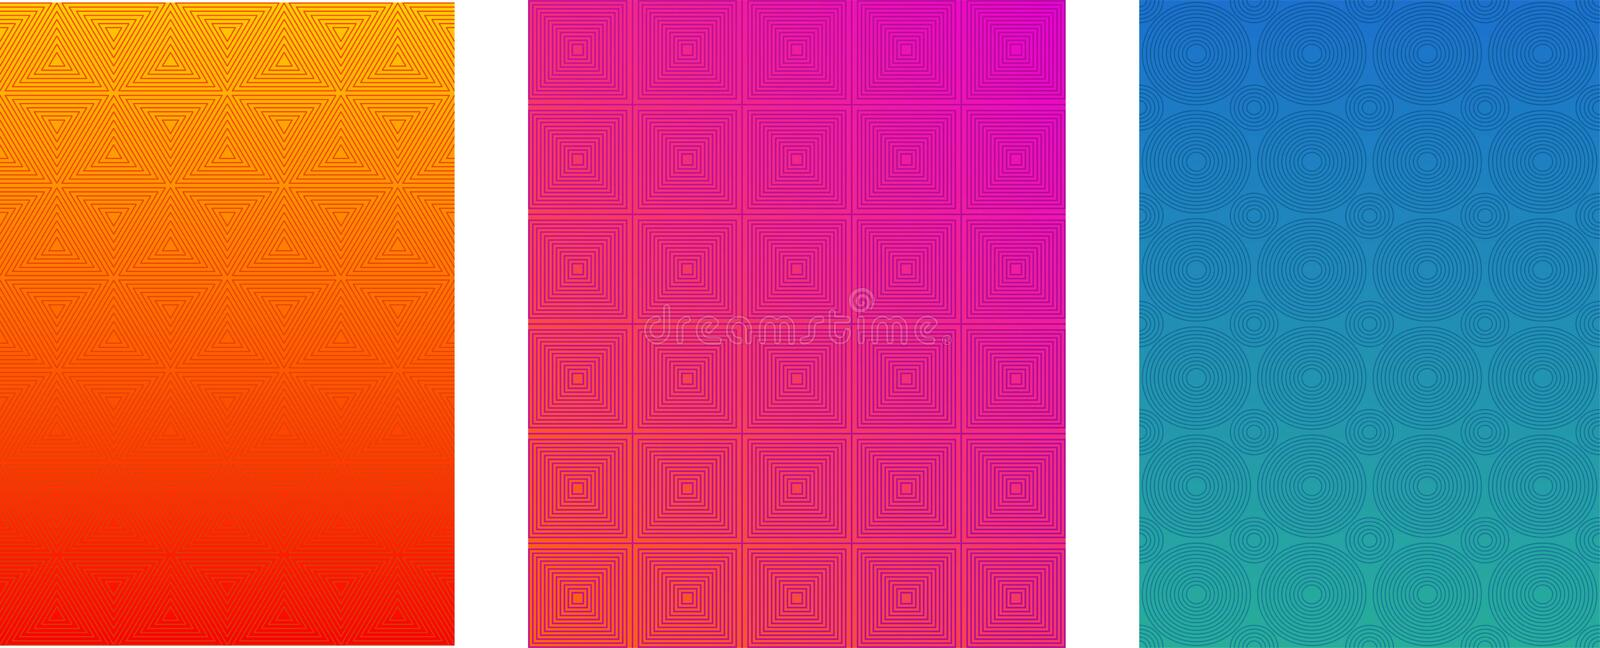 Minimal Cover or Brochure Vector Templates Set. Halftone Gradient Bright Background. Flyer, Leaflet, Banner, Web Design Wallpaper. royalty free illustration